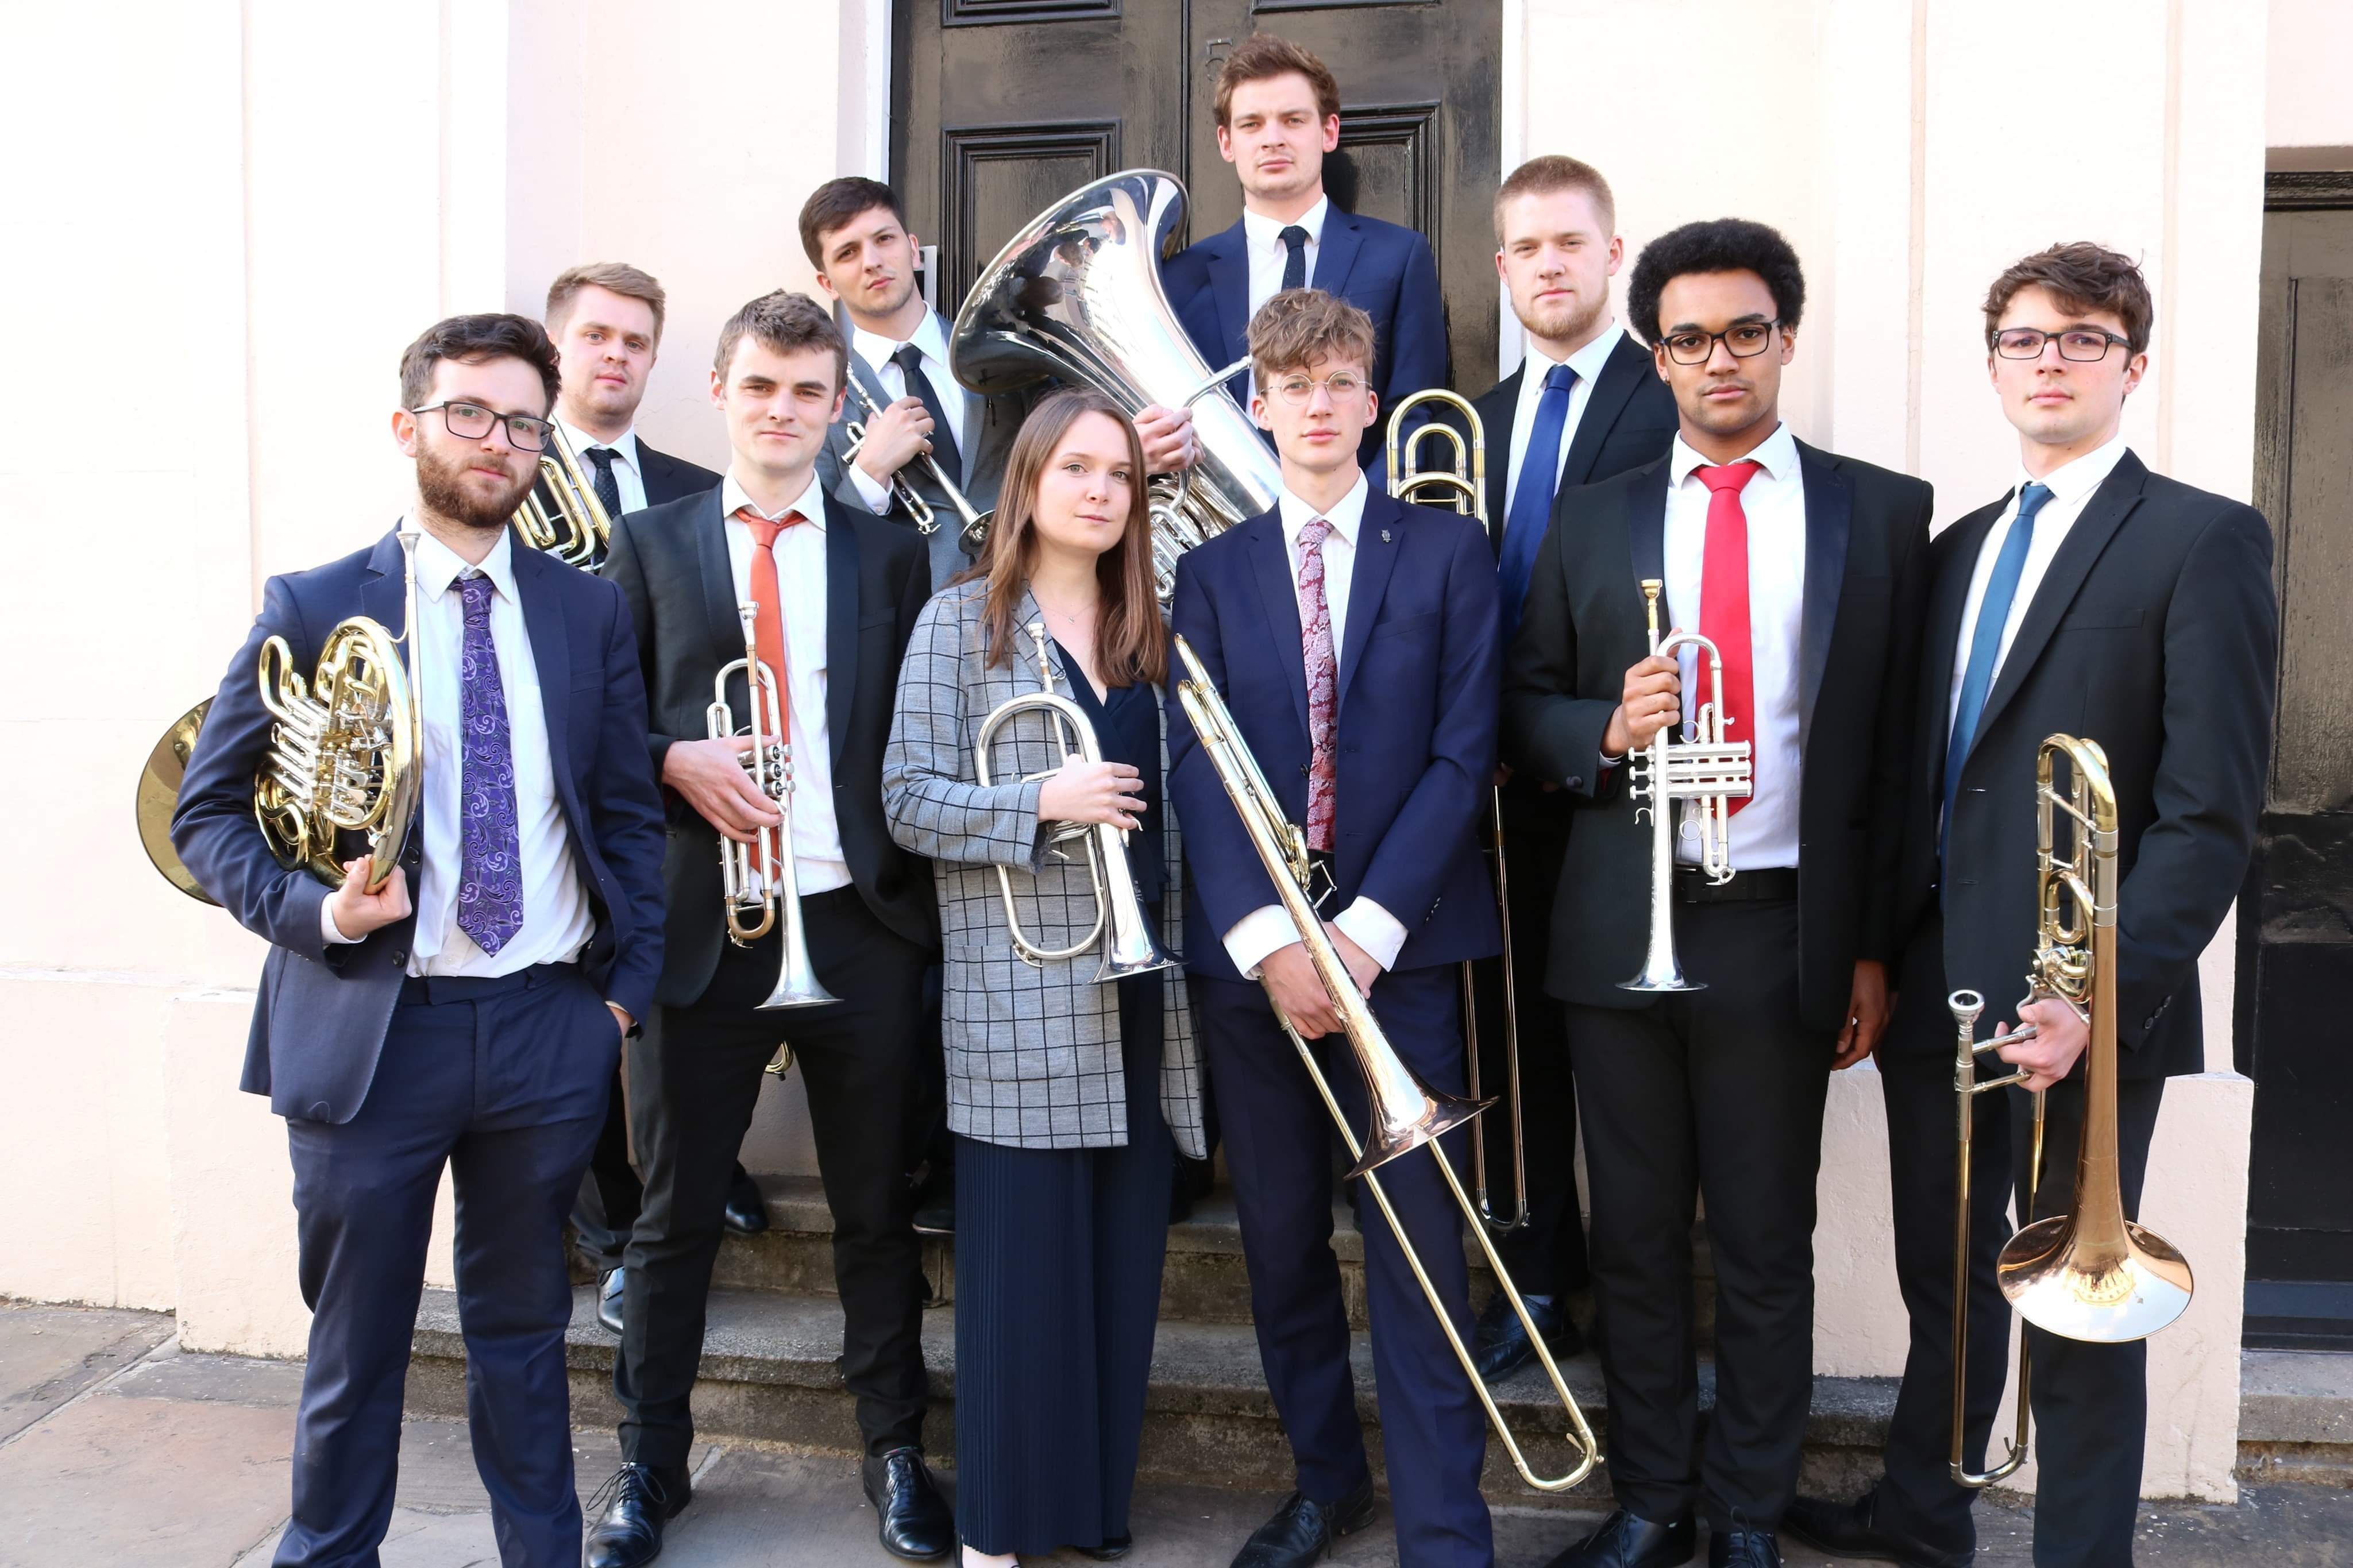 Lunchtime Concert - Ibex Brass